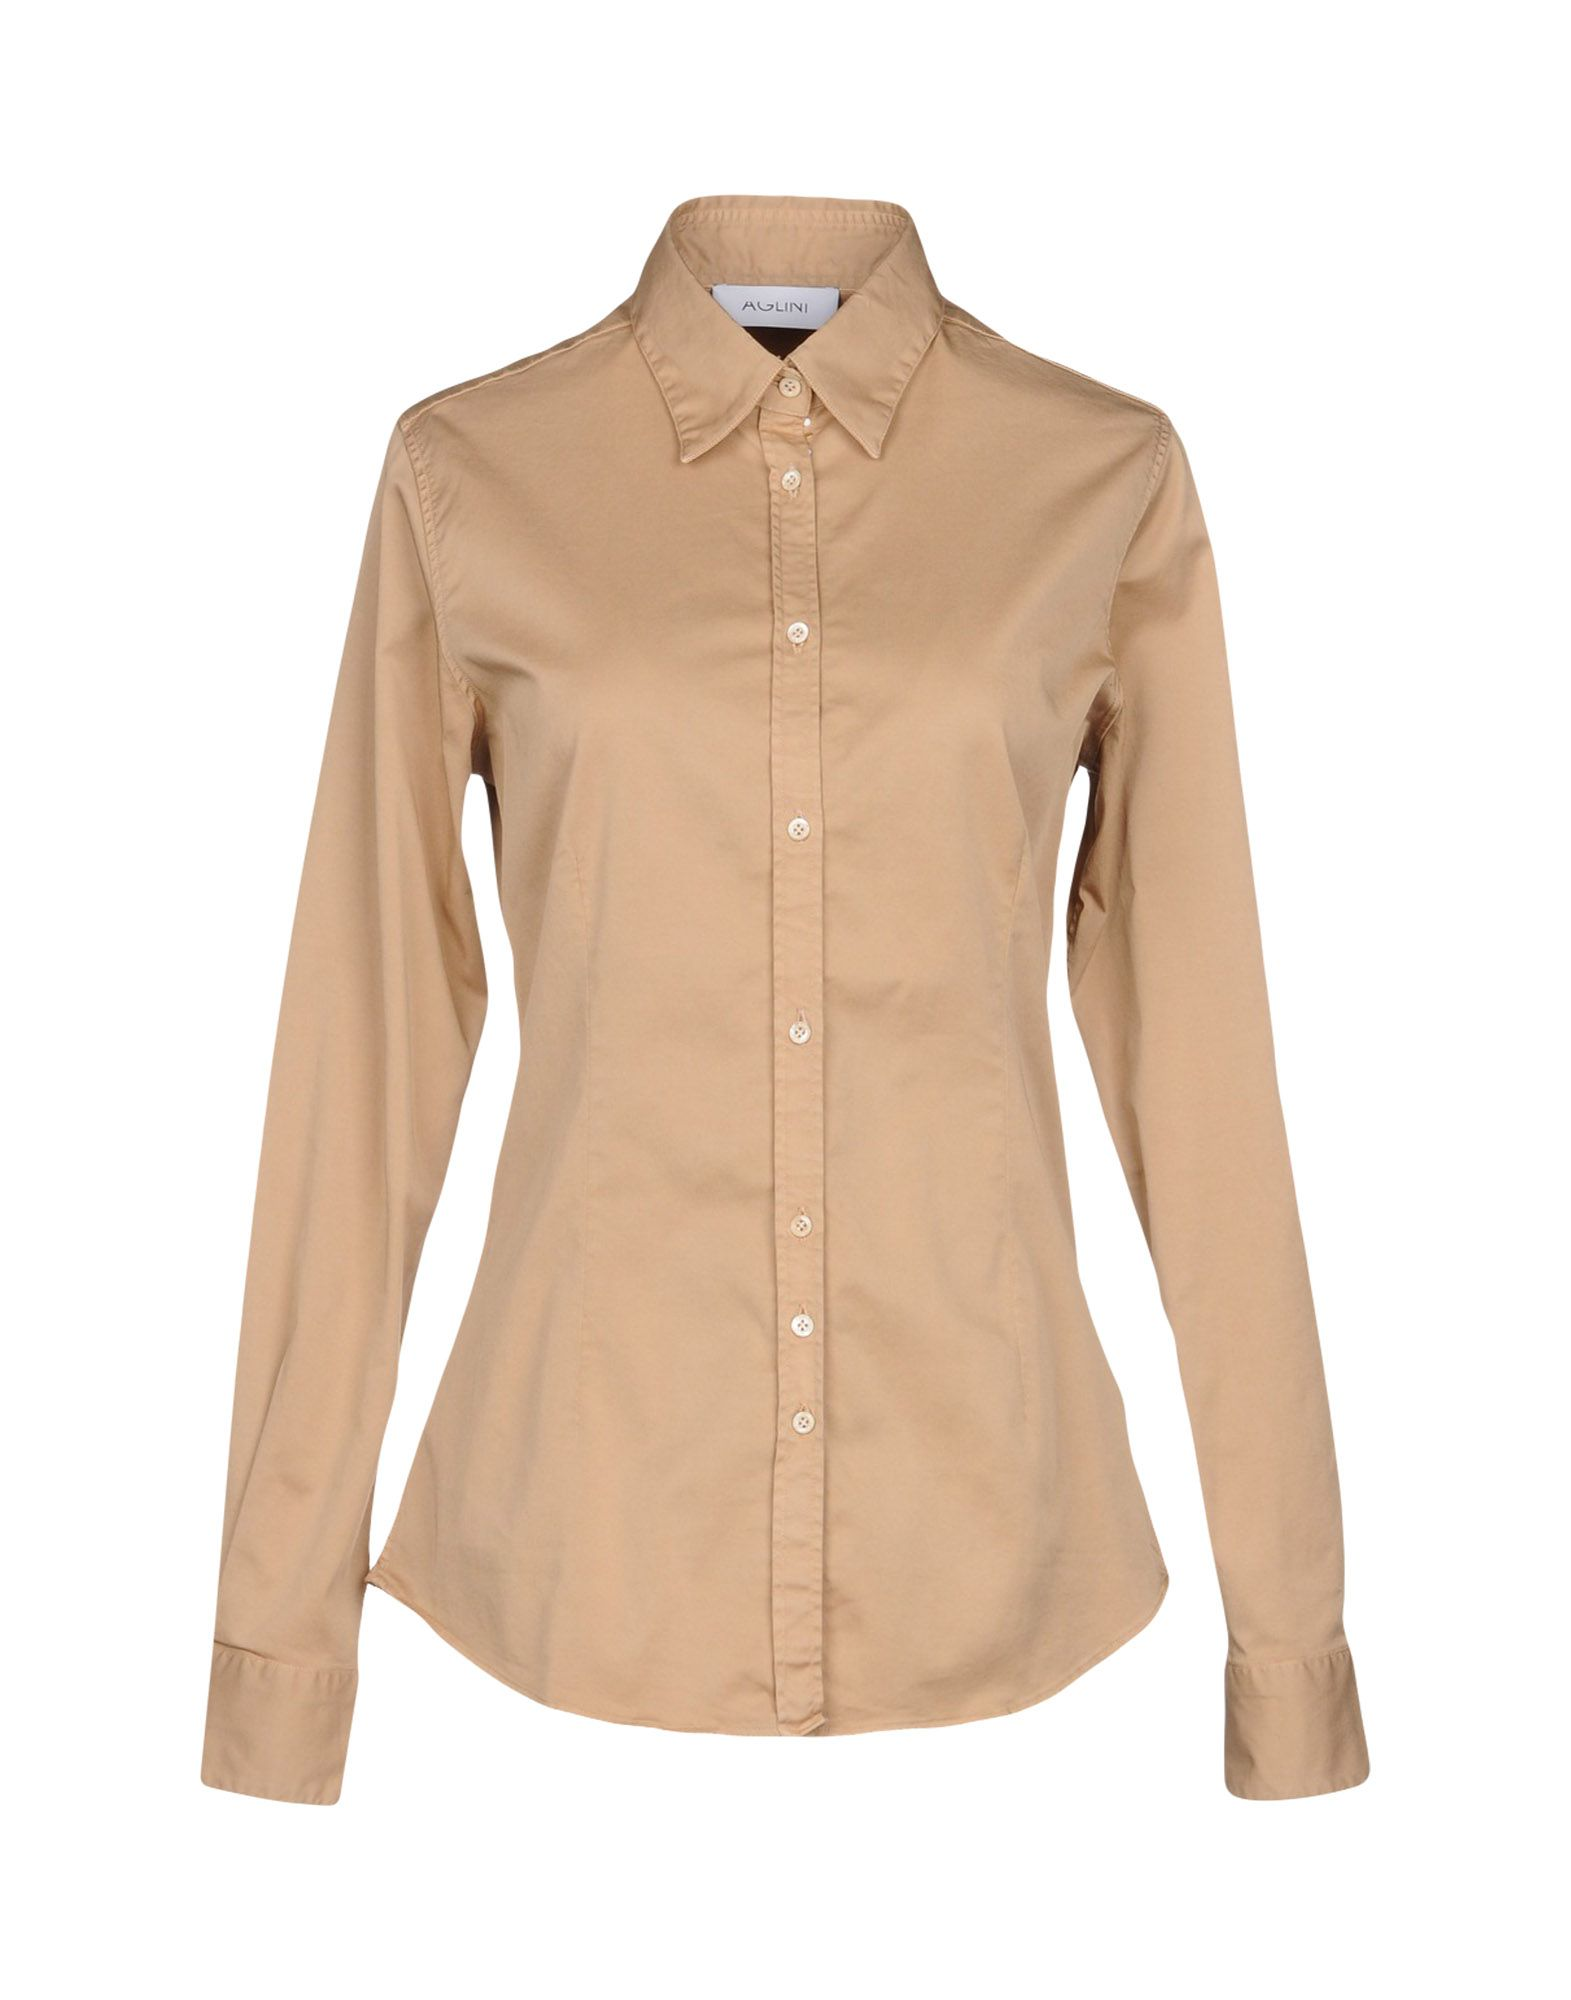 AGLINI Solid Color Shirts & Blouses in Sand